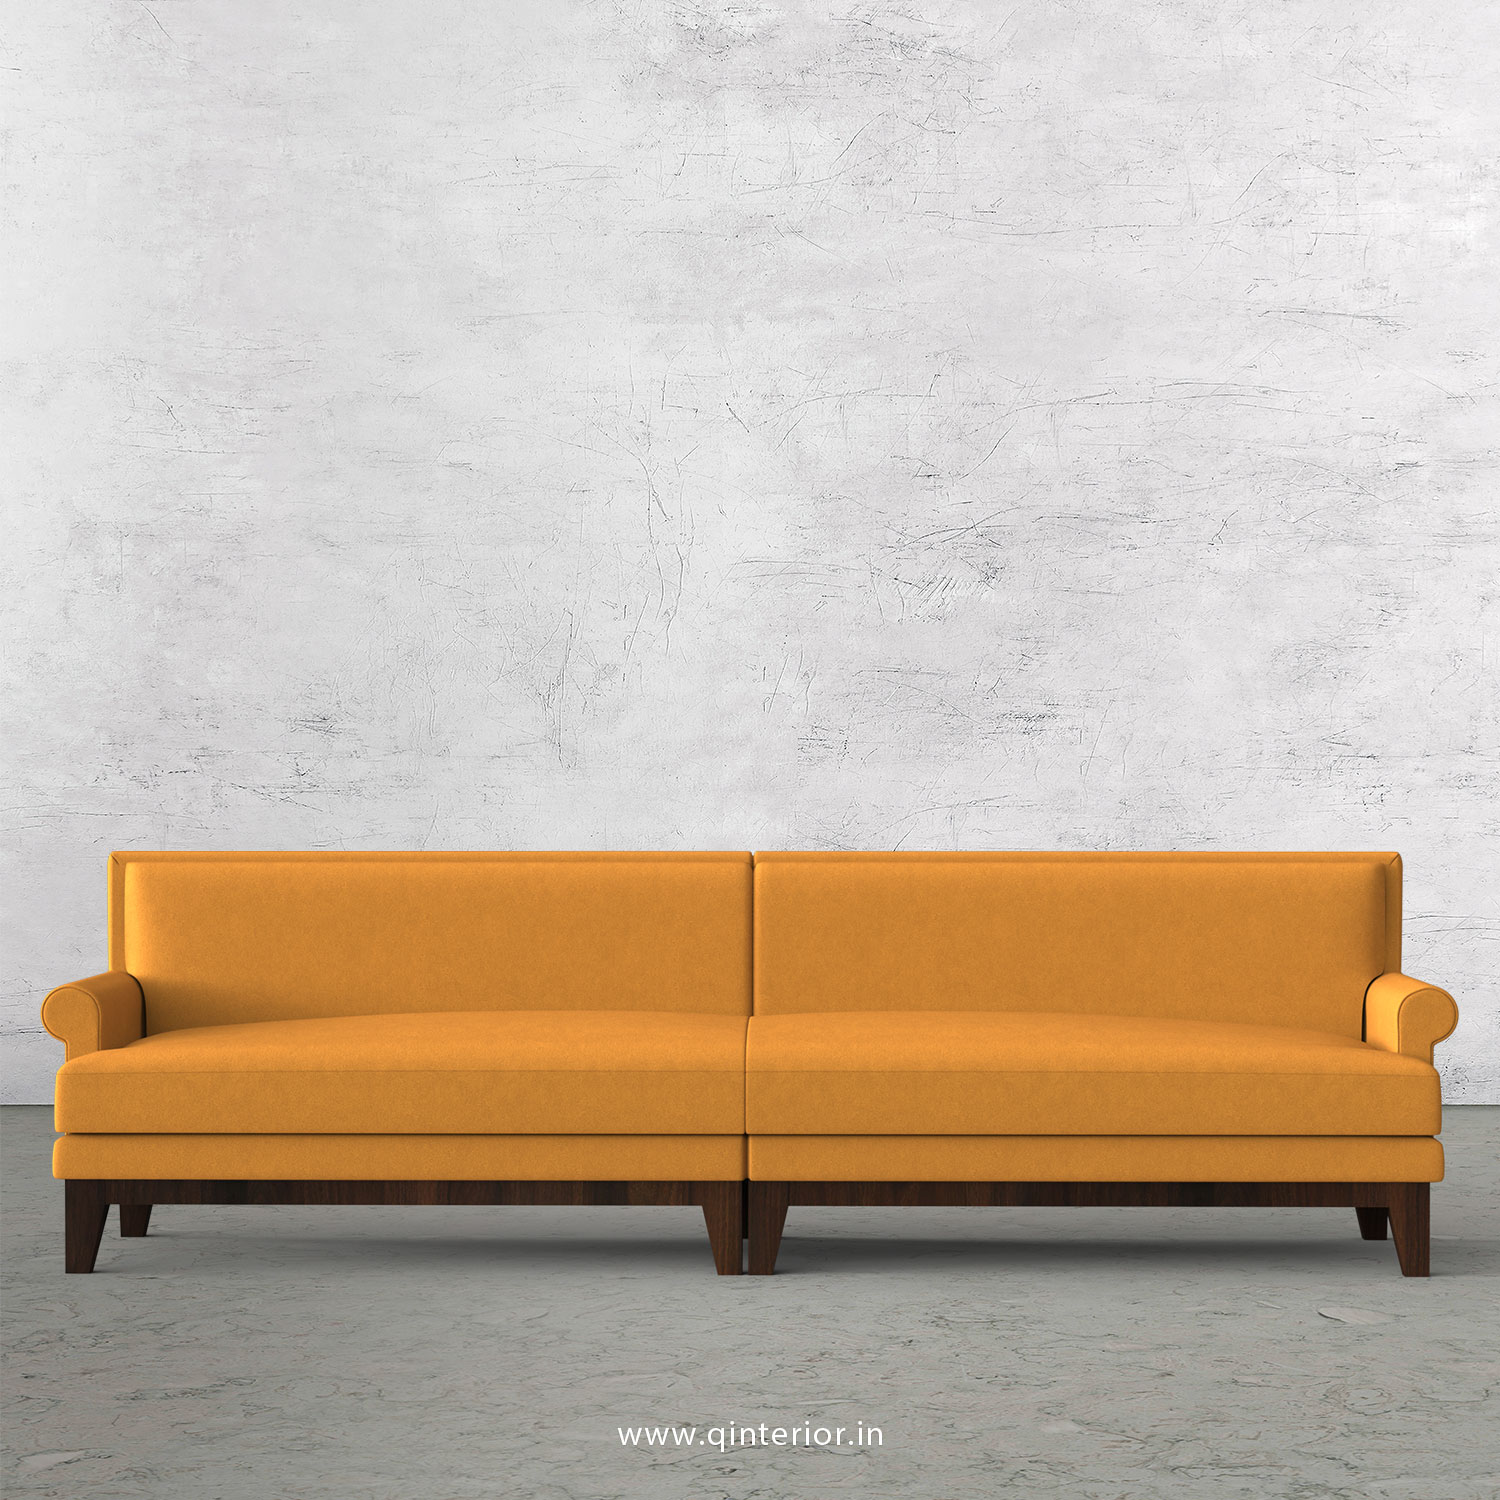 Aviana 4 Seater Sofa in Velvet Fabric - SFA001 VL18